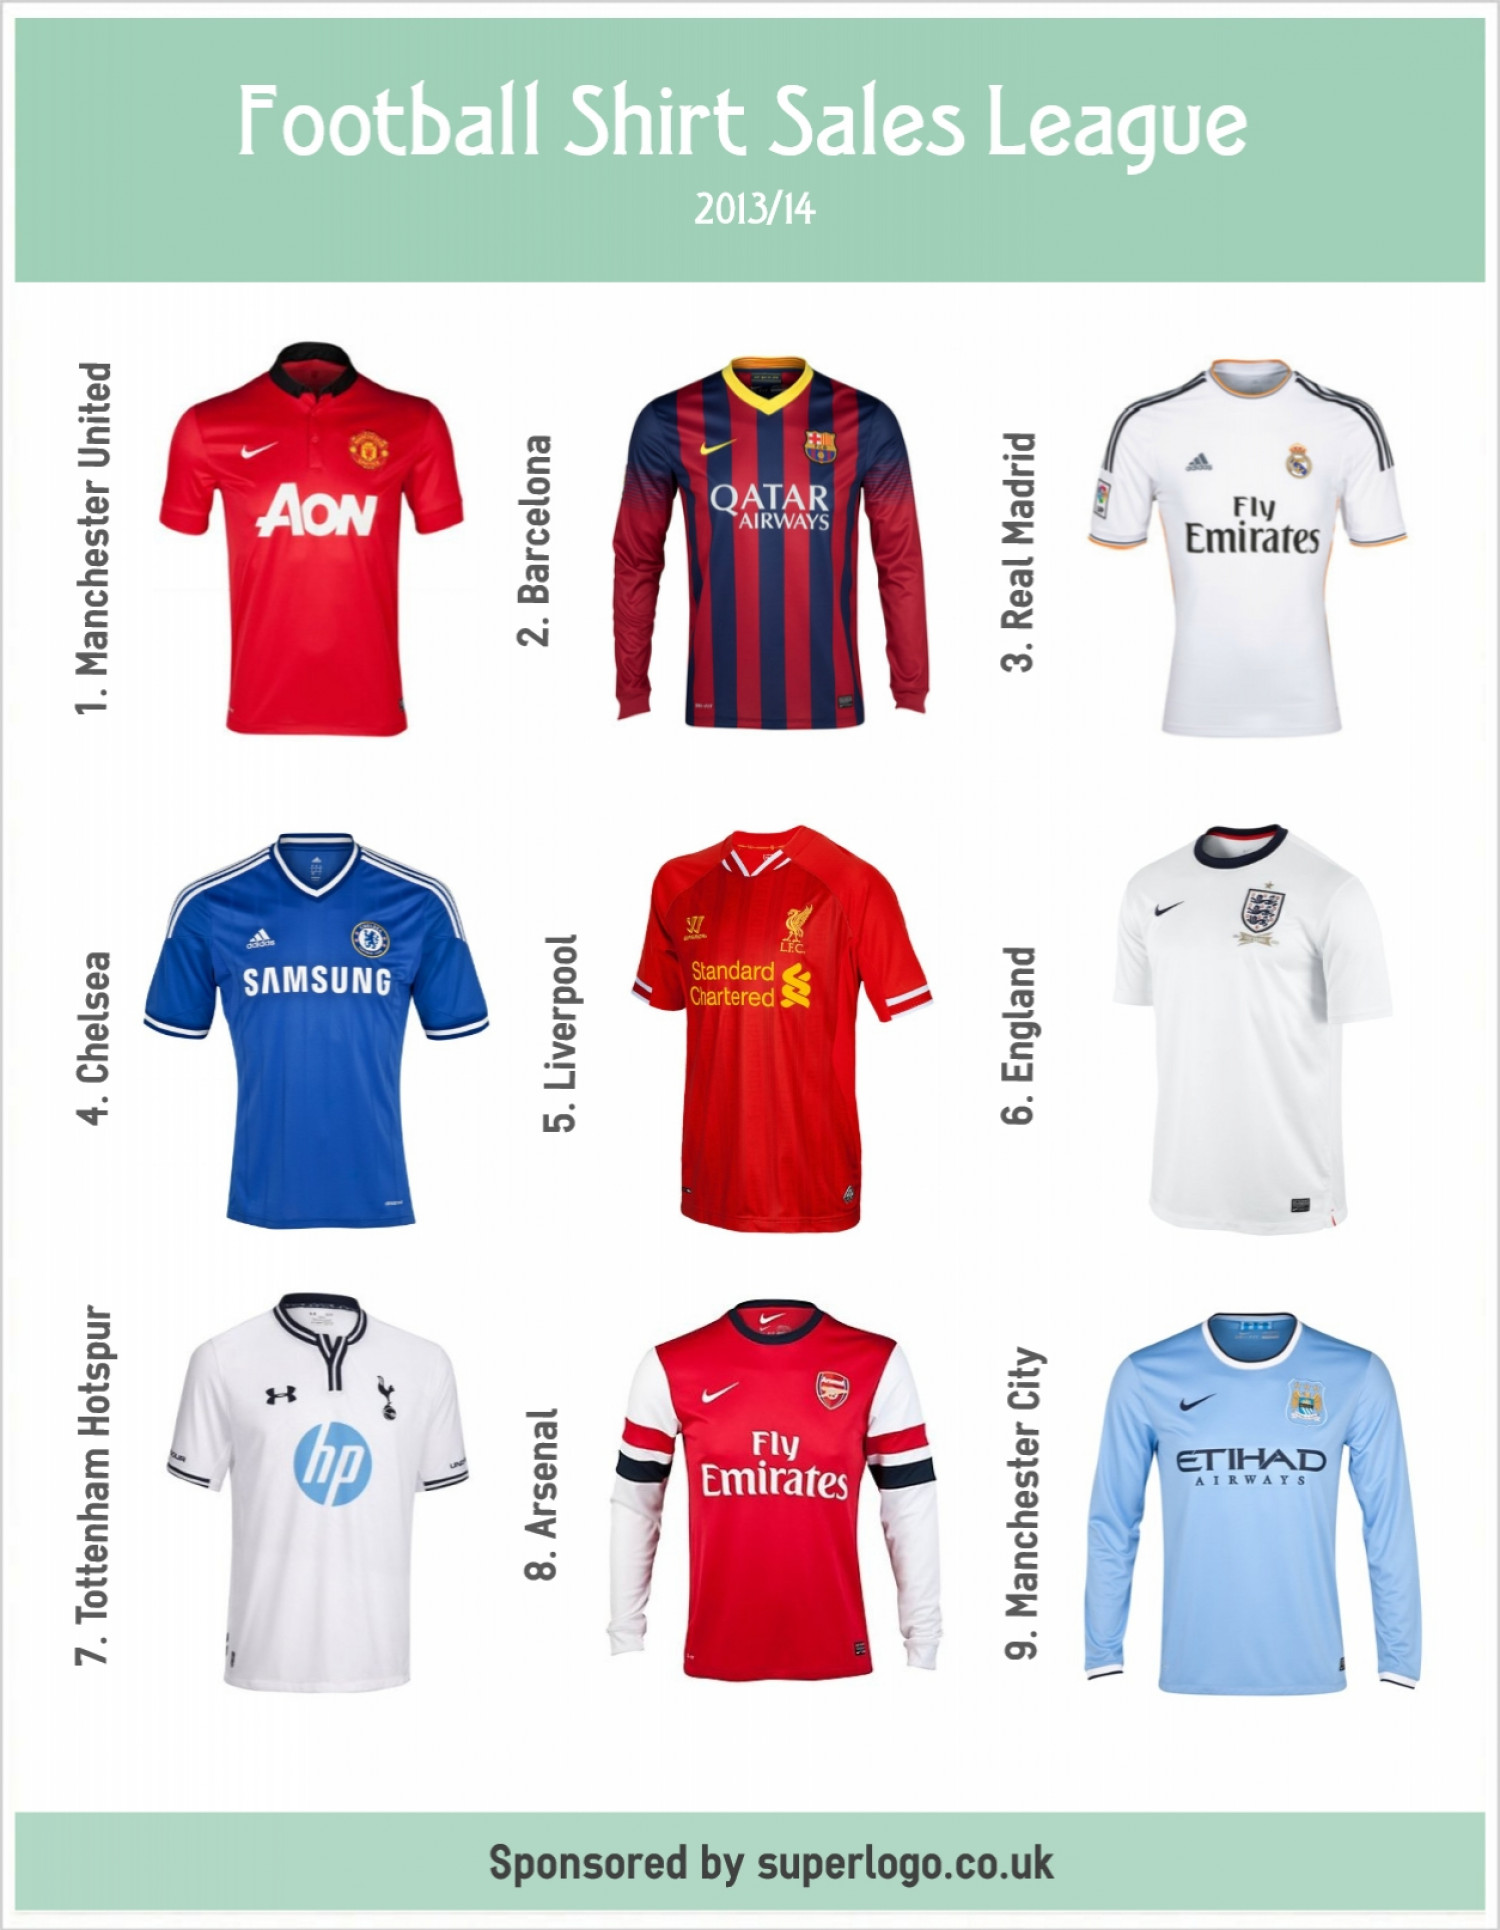 Football Shirt Sales League 2013/14 Infographic